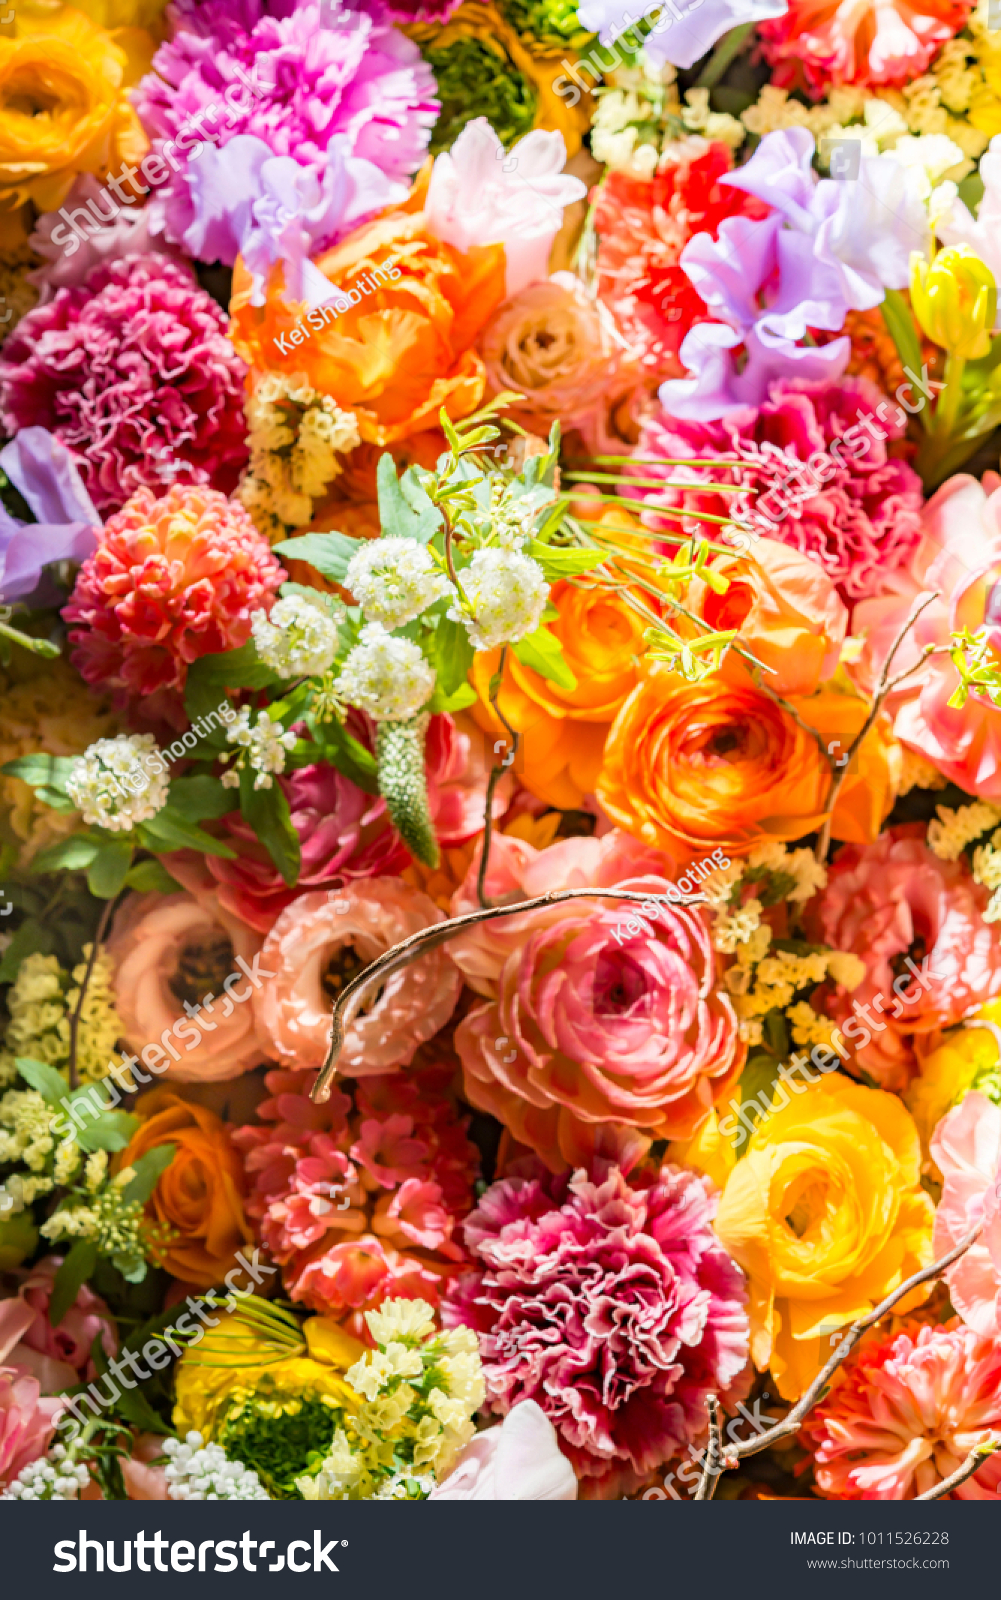 Colorful Beautiful Flower Wall Stock Photo Edit Now 1011526228